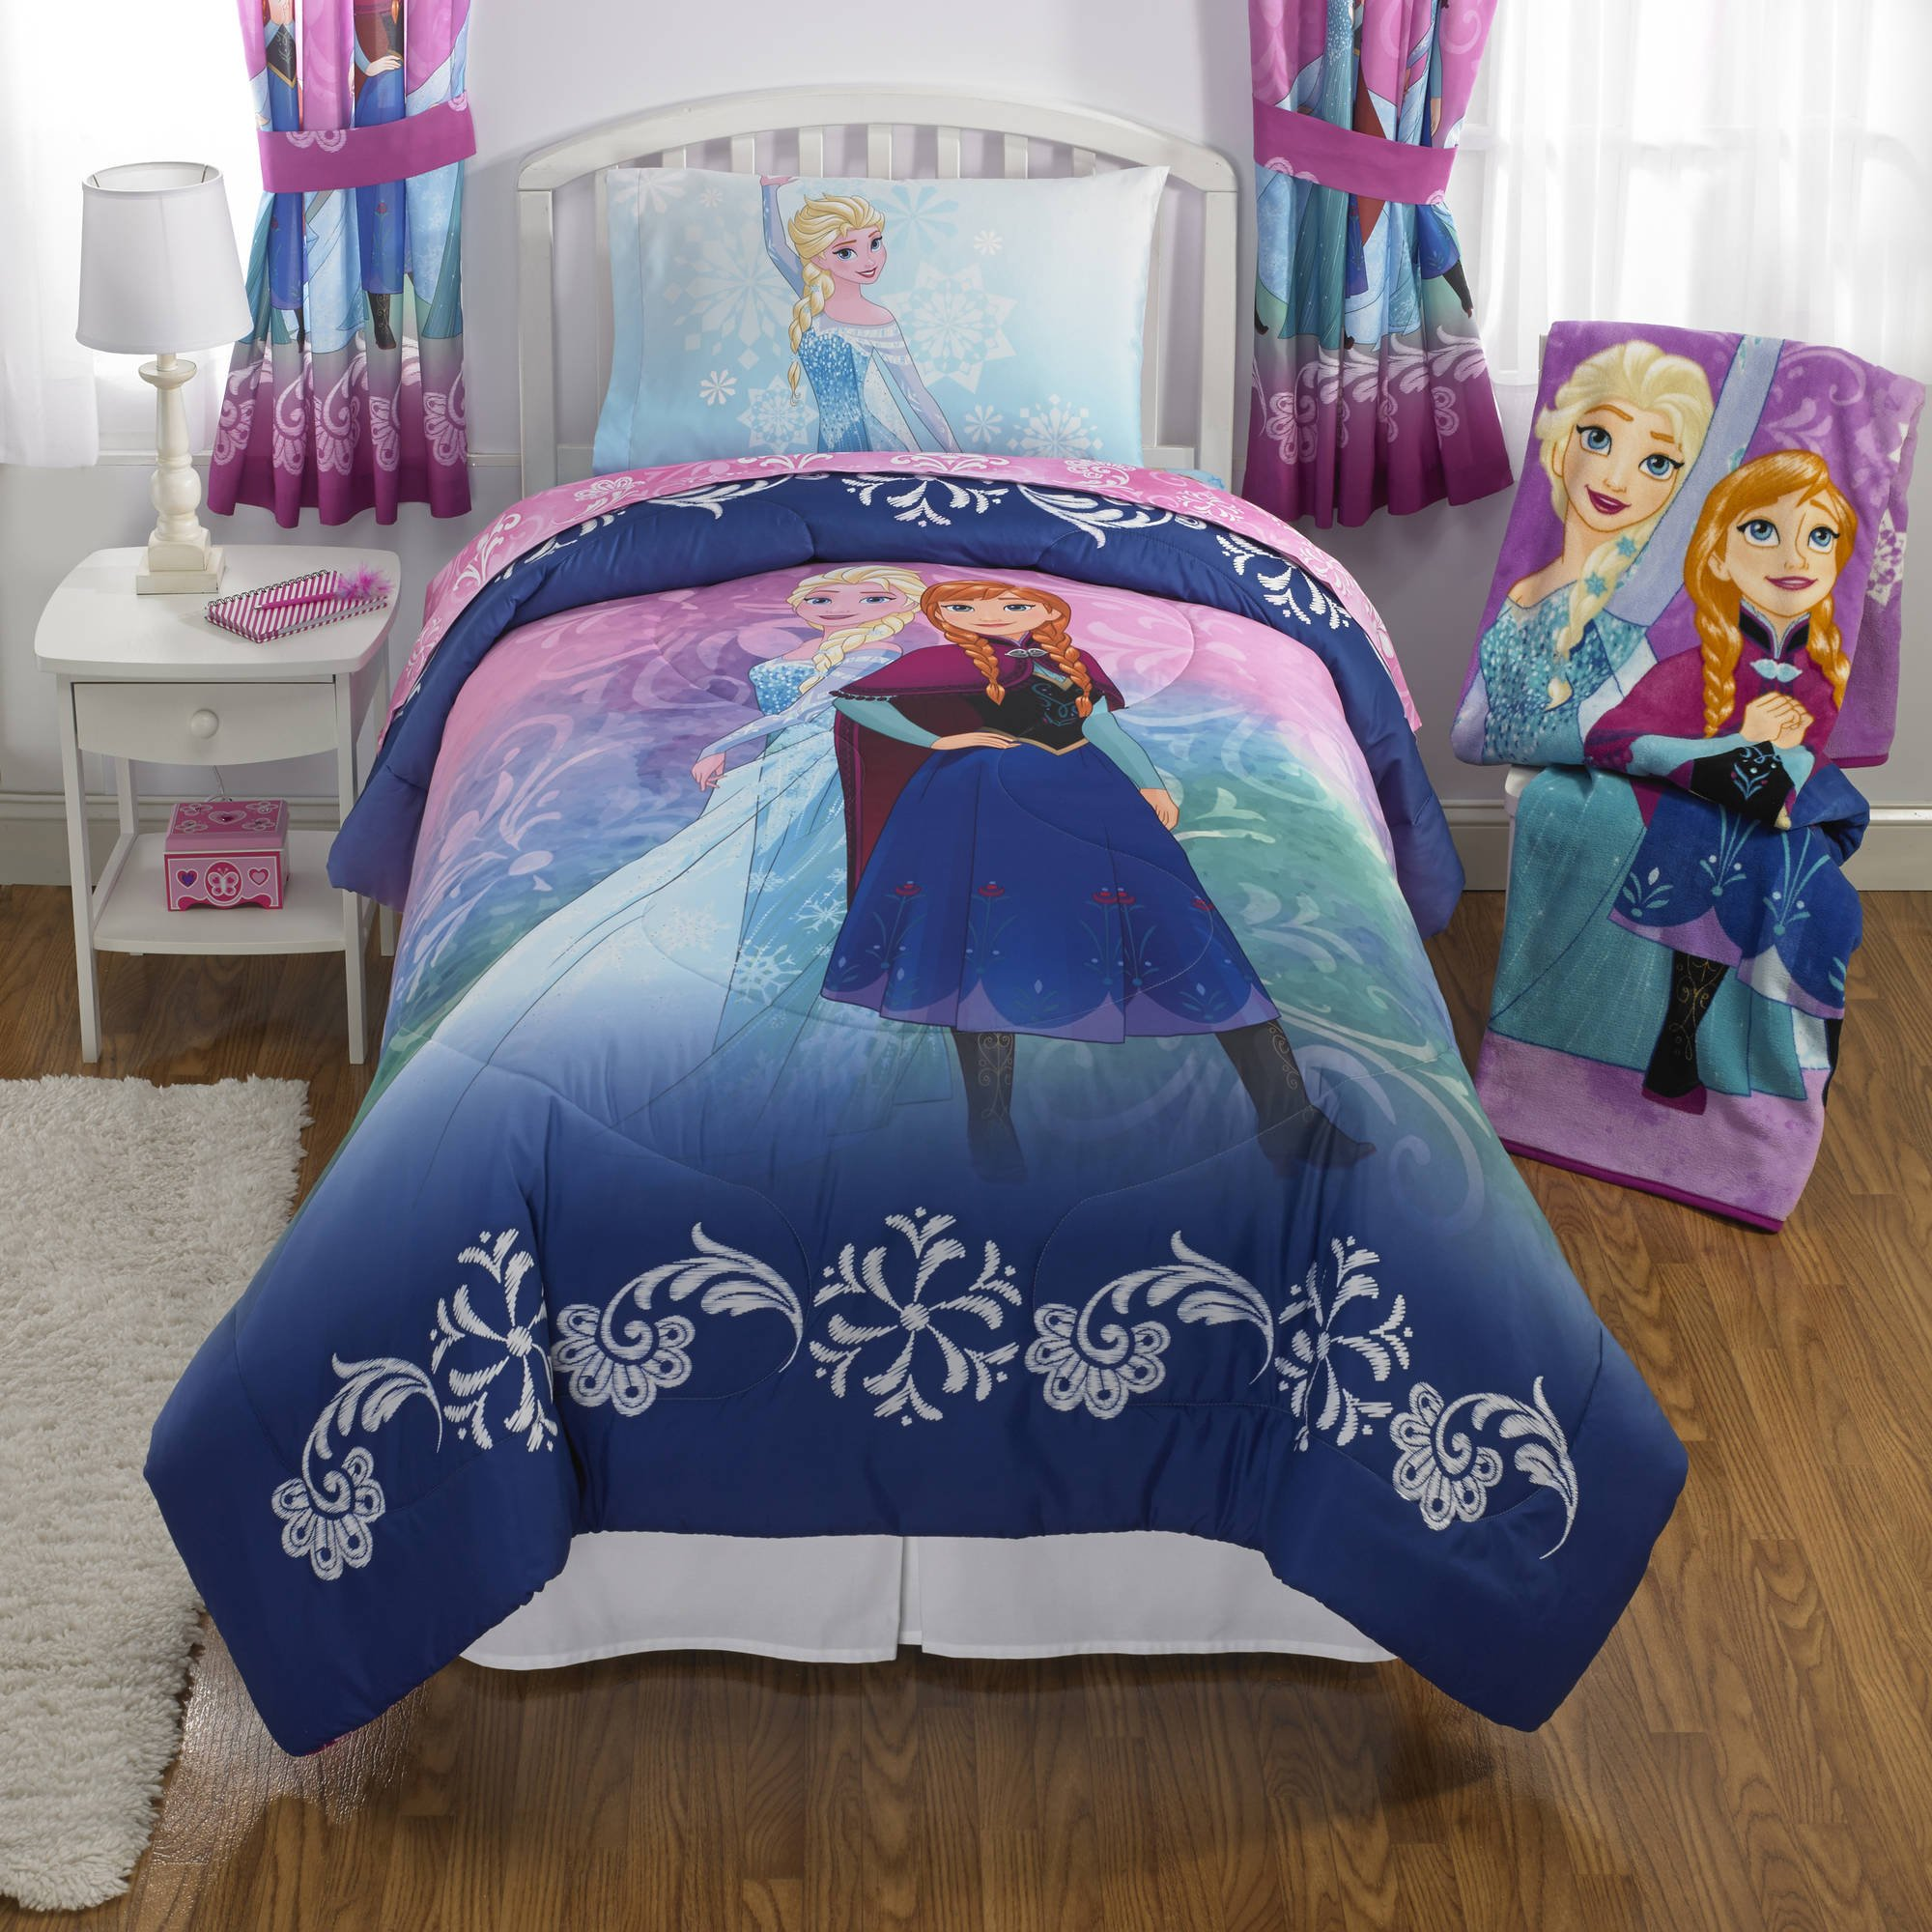 Disney Frozen Reversible Twin/Double/Full Comforter Featuring Elsa and Anna (72 x 86 Inches)